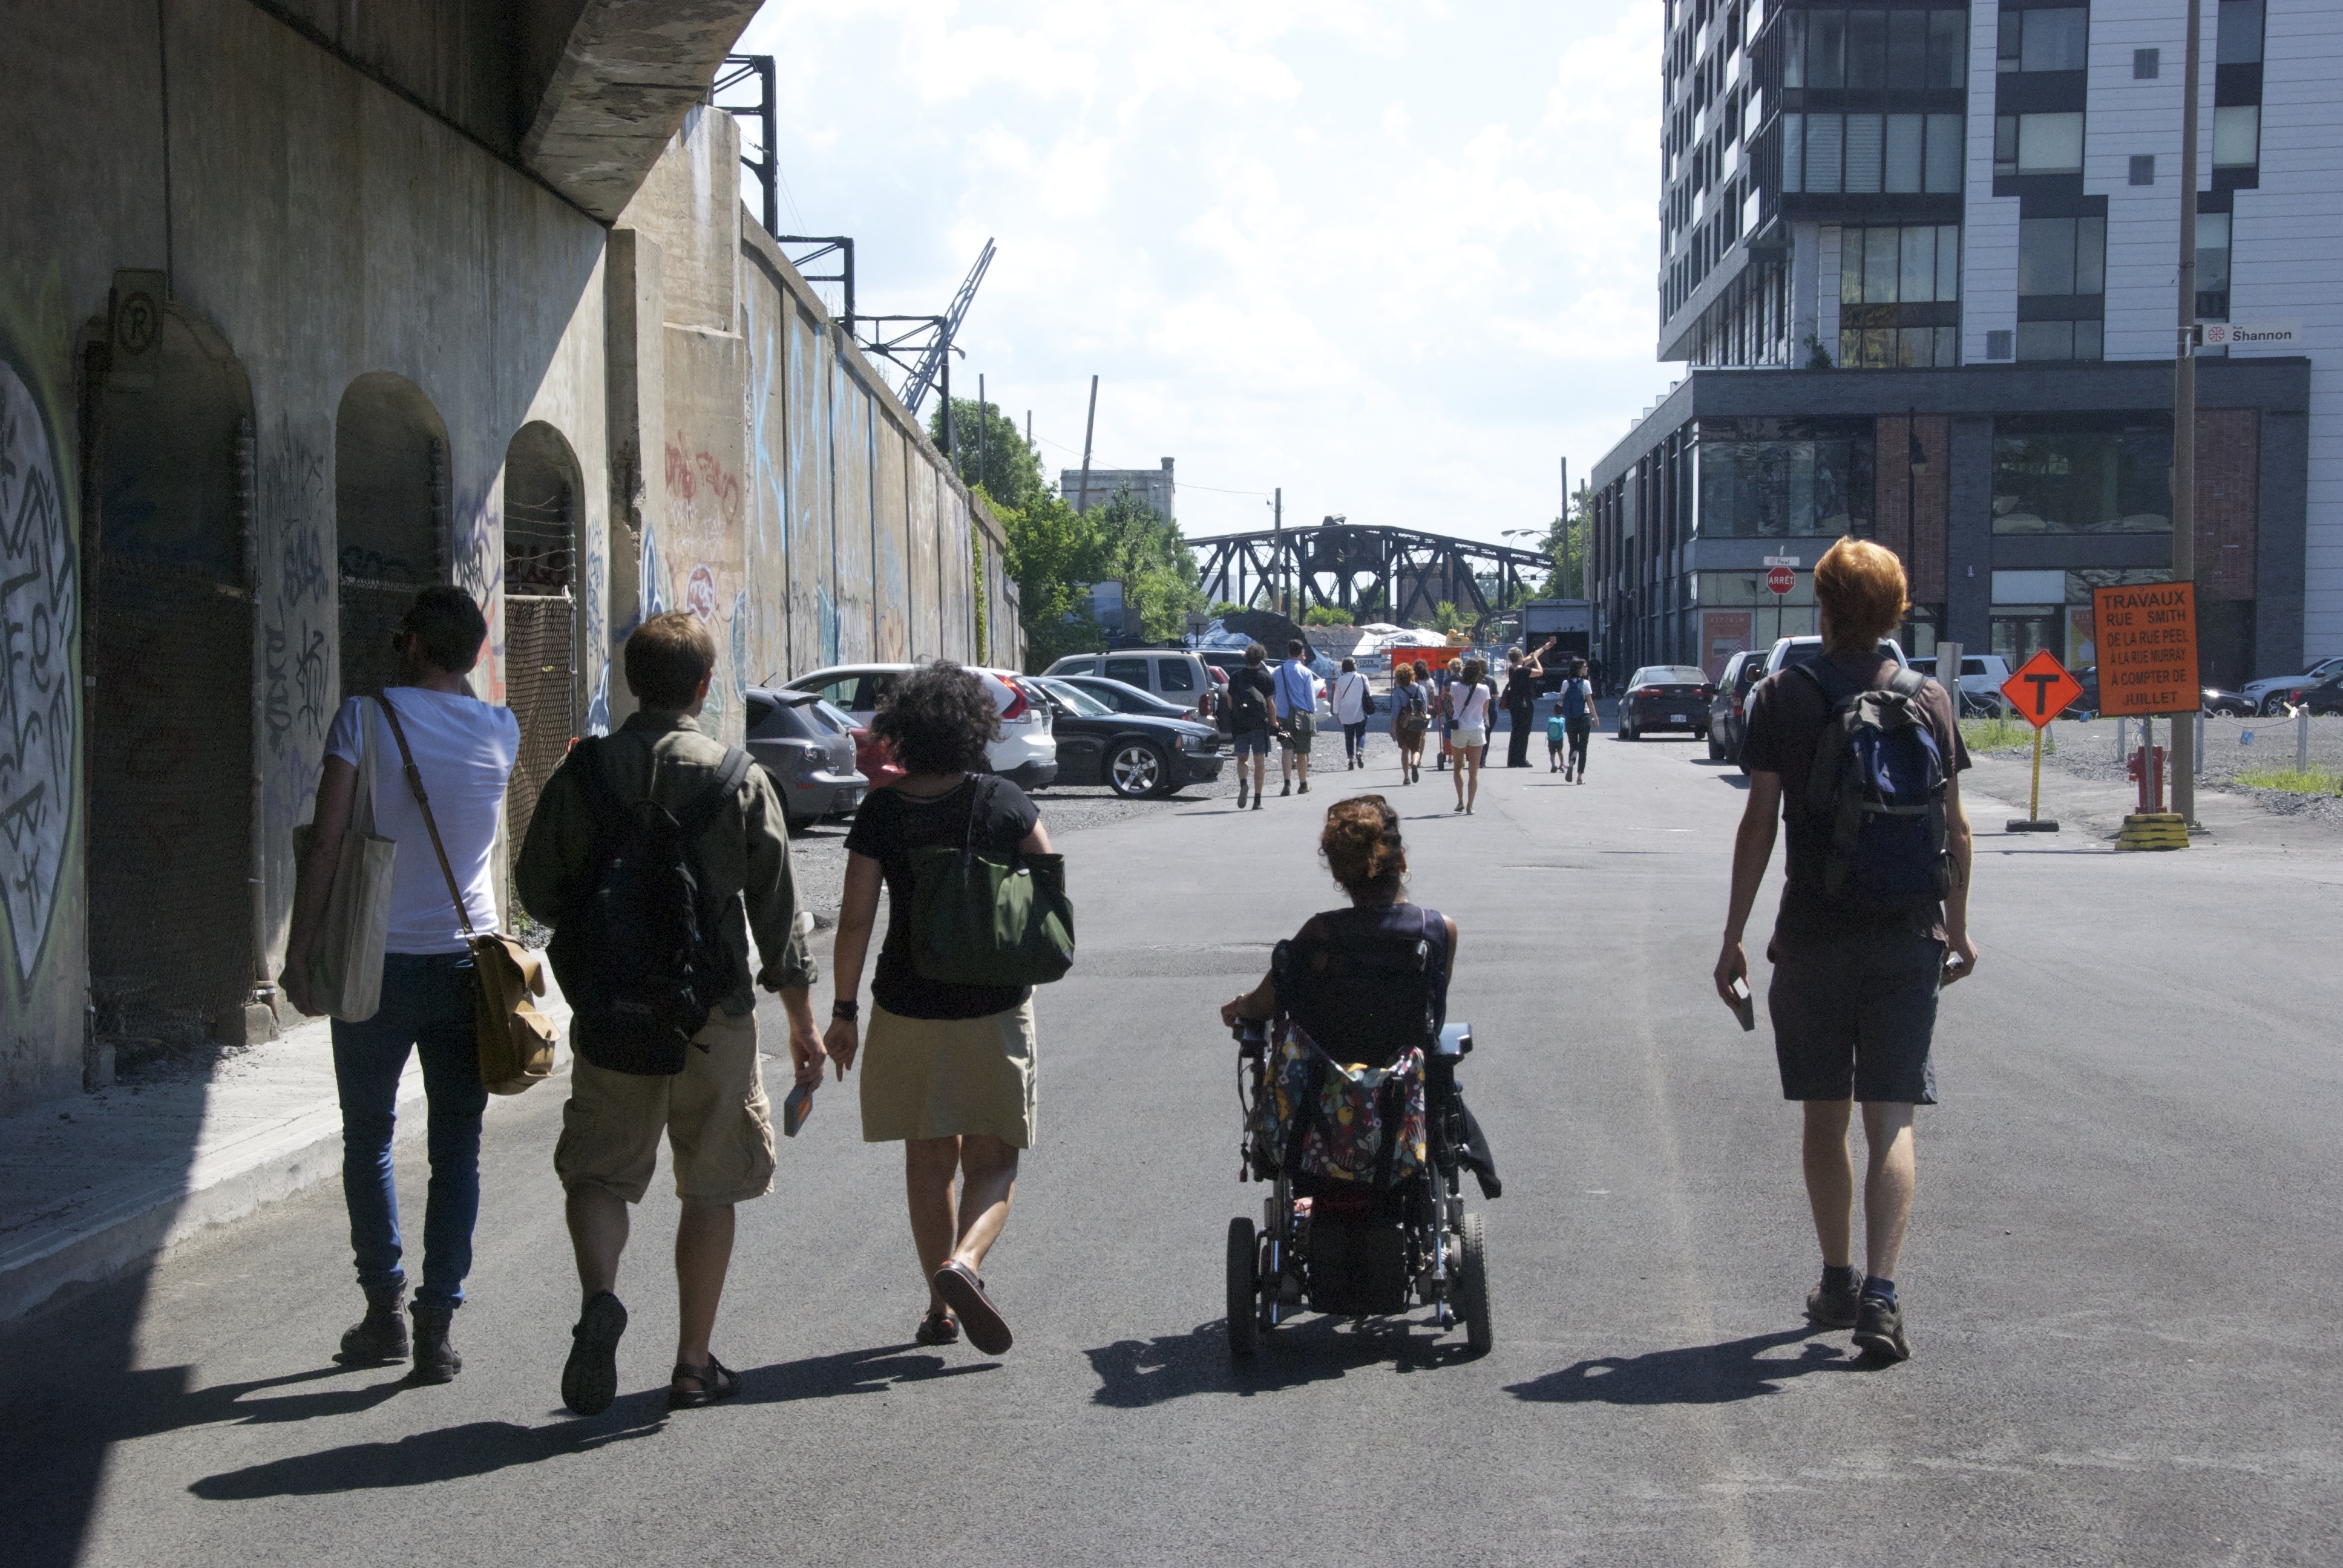 [Image 15 - Participants traversing Griffintown during the Spatial justice urban lab, 26 July 2014. Photo: C.Bédard]